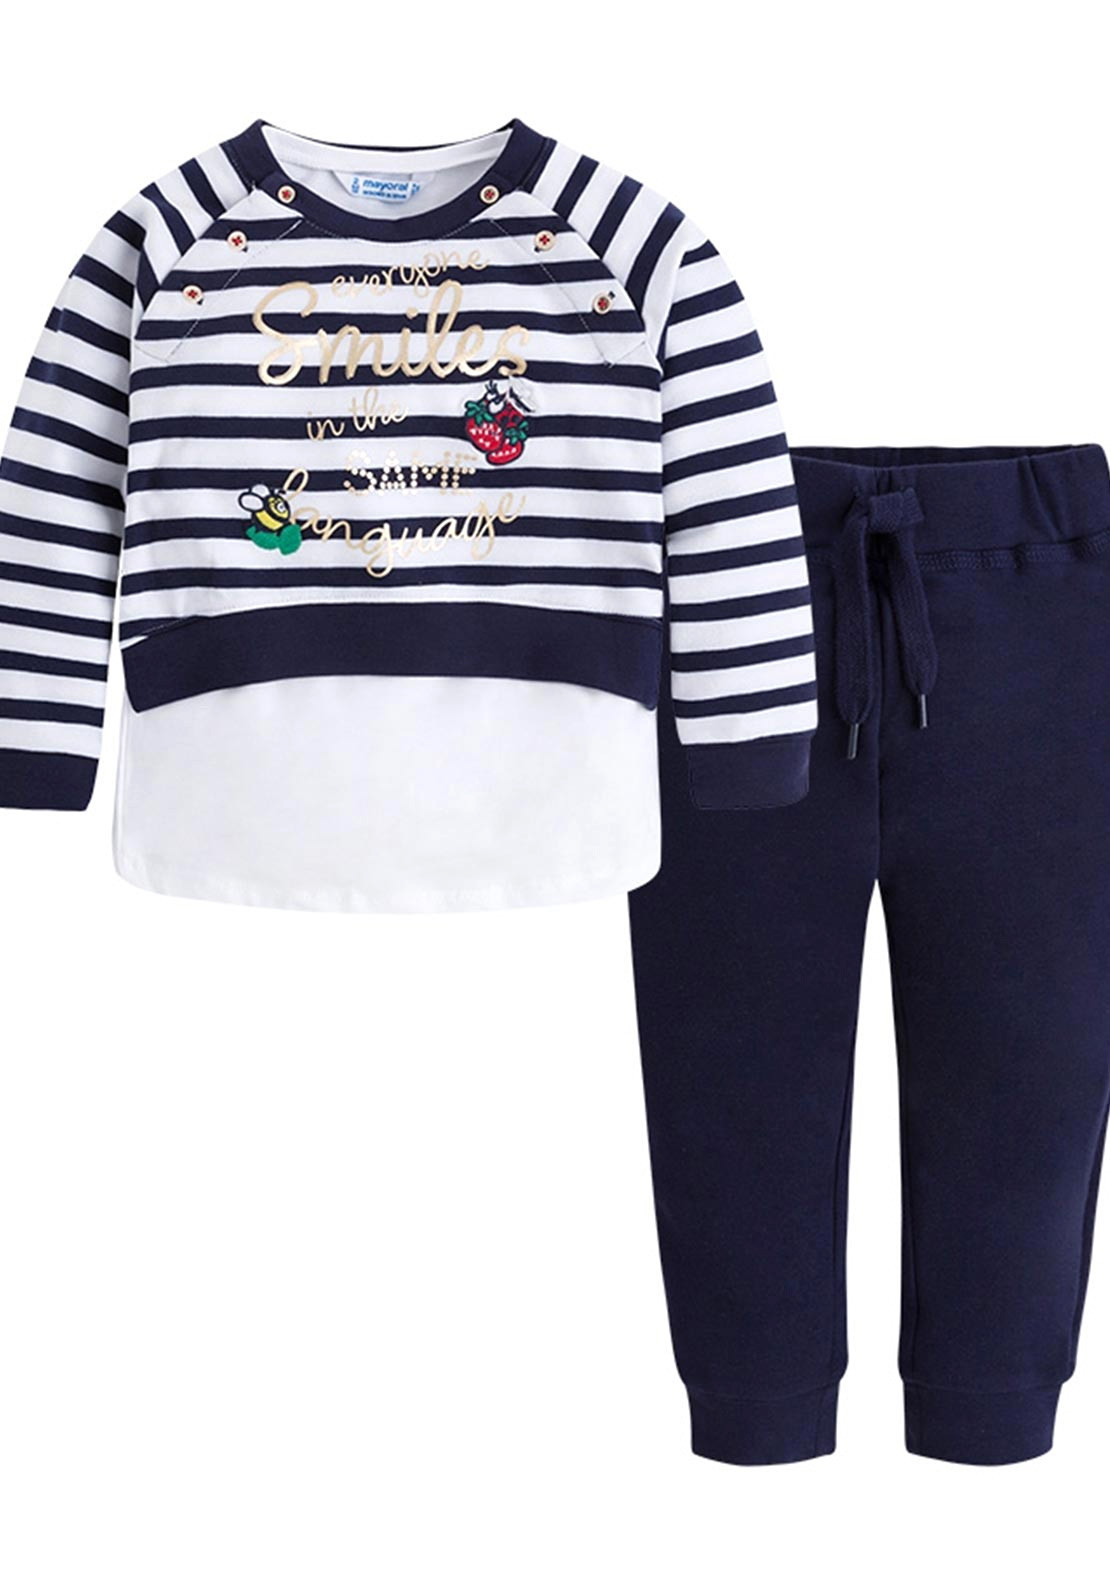 212f1a57c97d6e Mayoral Girls Three Piece Tracksuit, Navy | McElhinneys